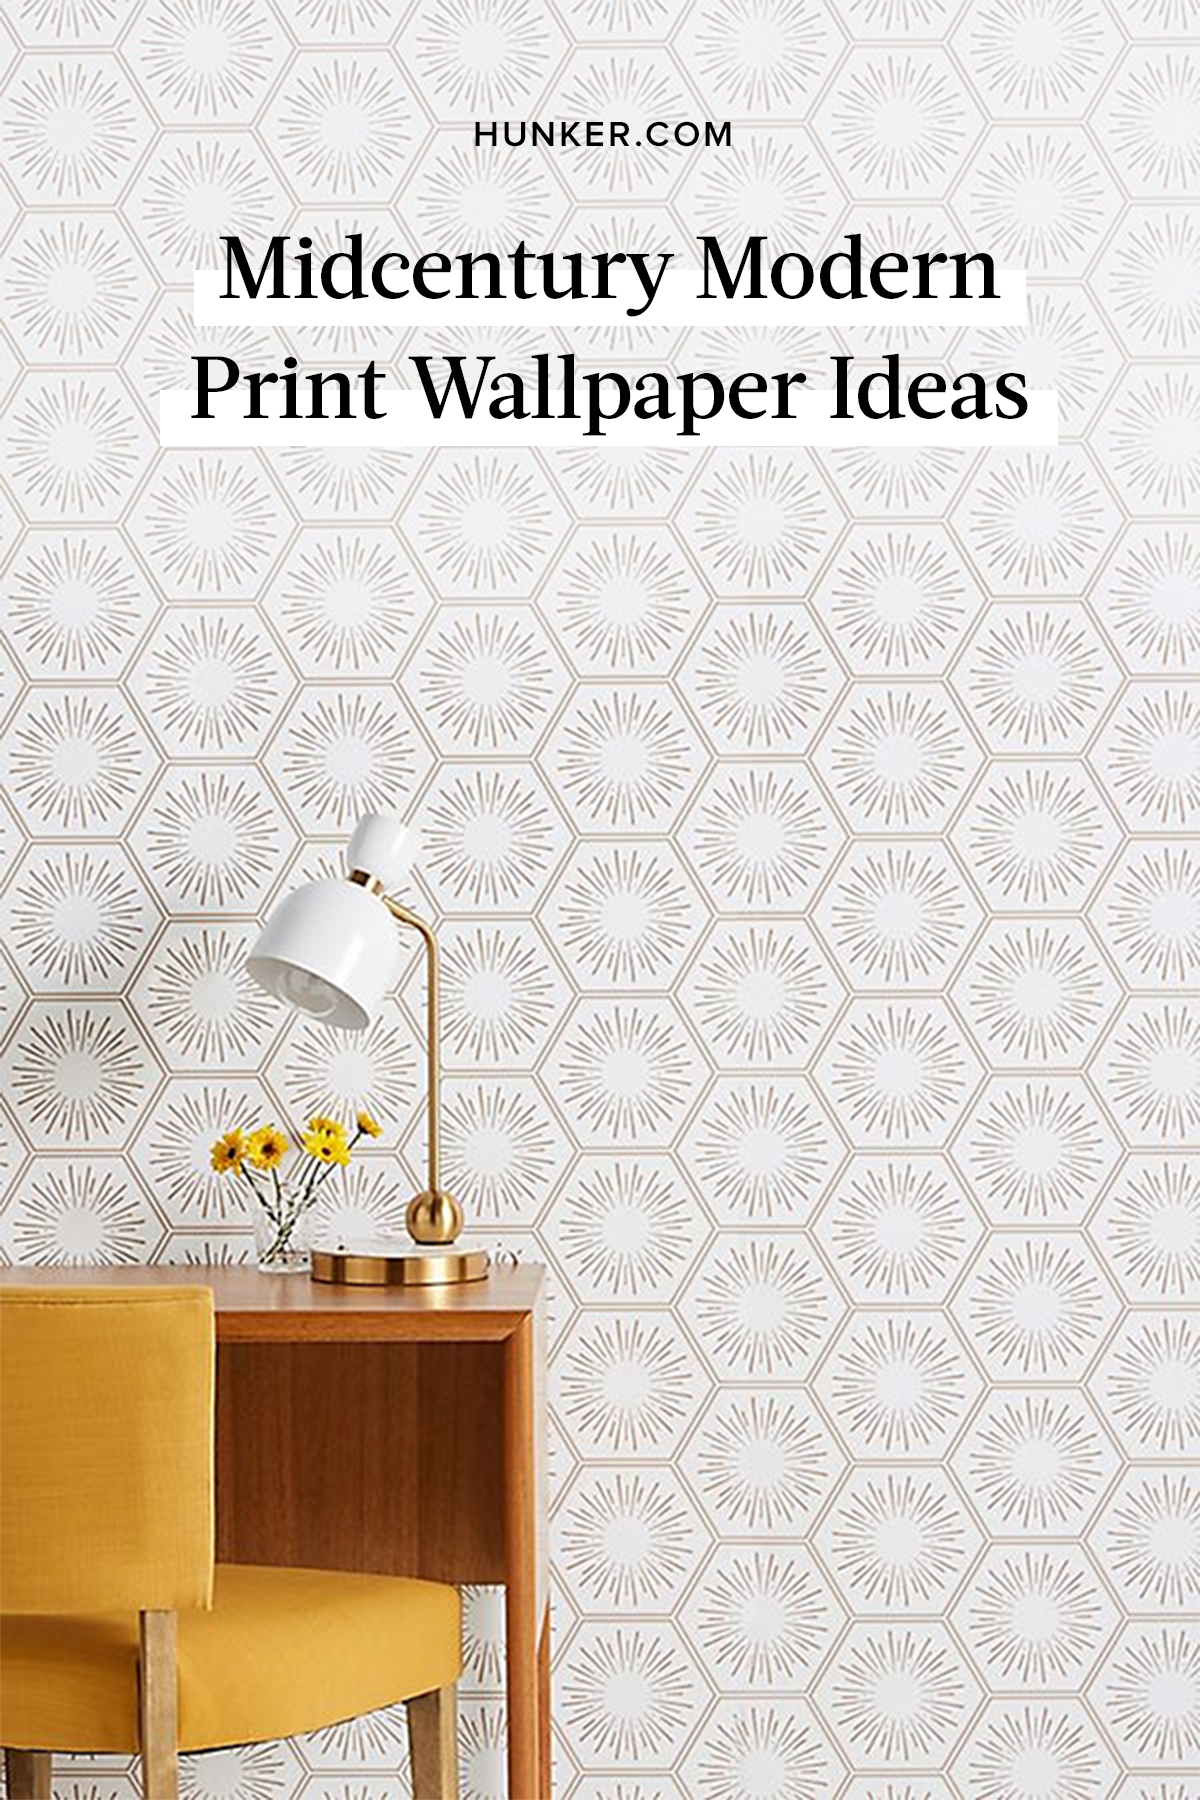 Looking For Midcentury Modern Wallpaper These Prints Are Perfectly Retro Hunker Modern Print Wallpaper Modern Wallpaper Midcentury Modern